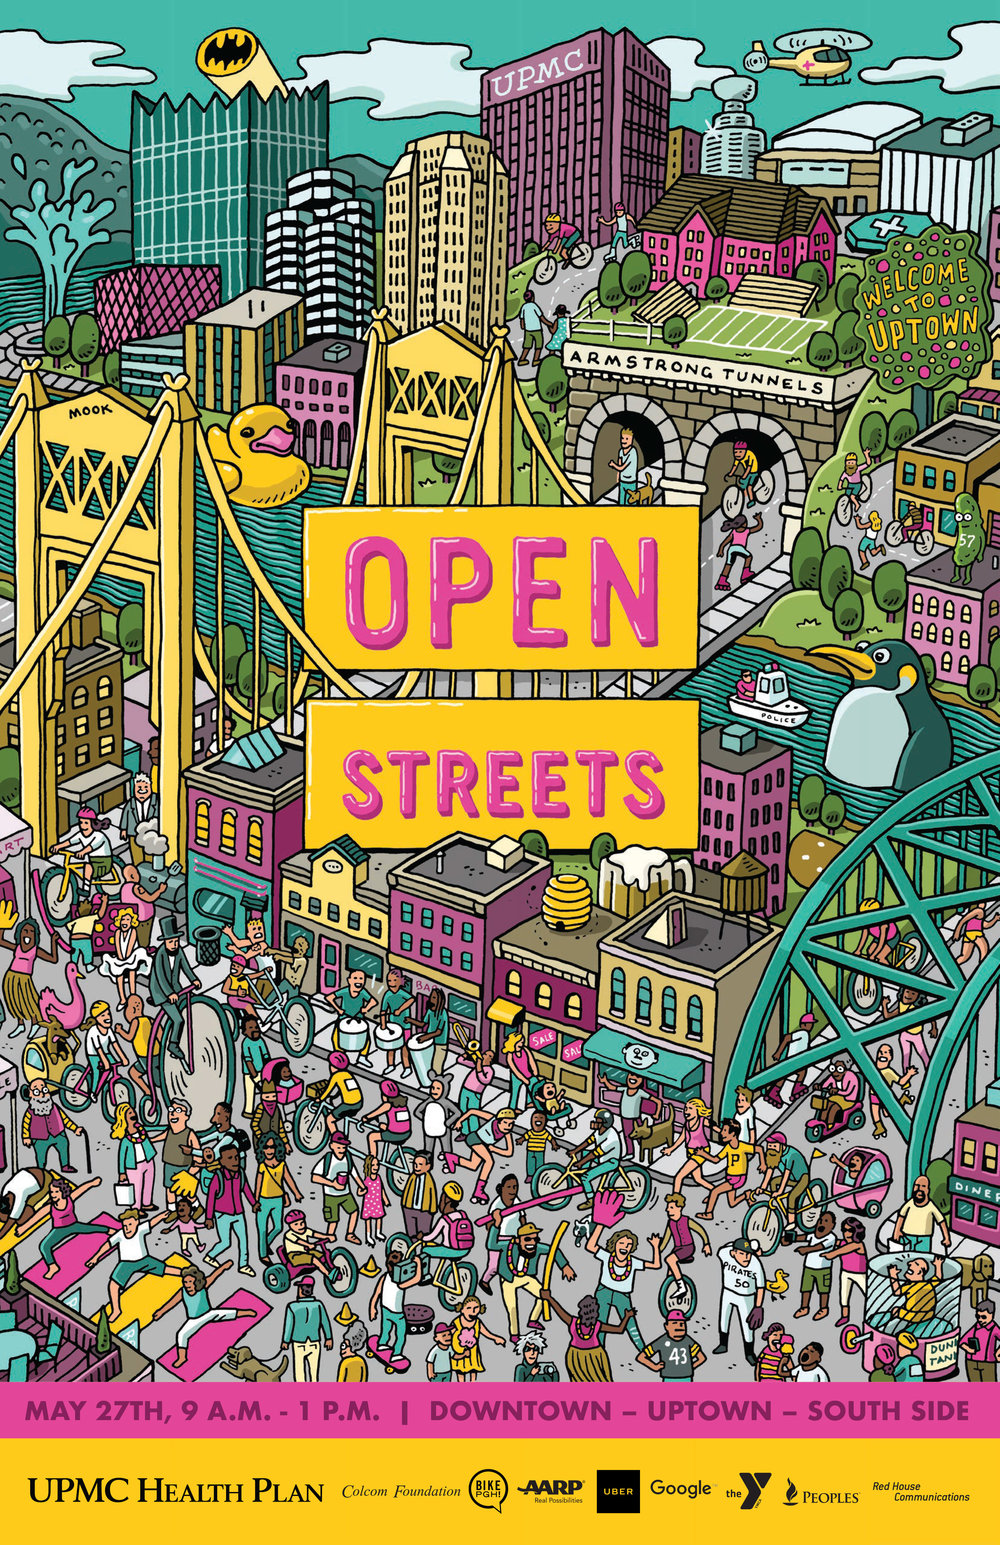 openstreetspgh-poster.jpg